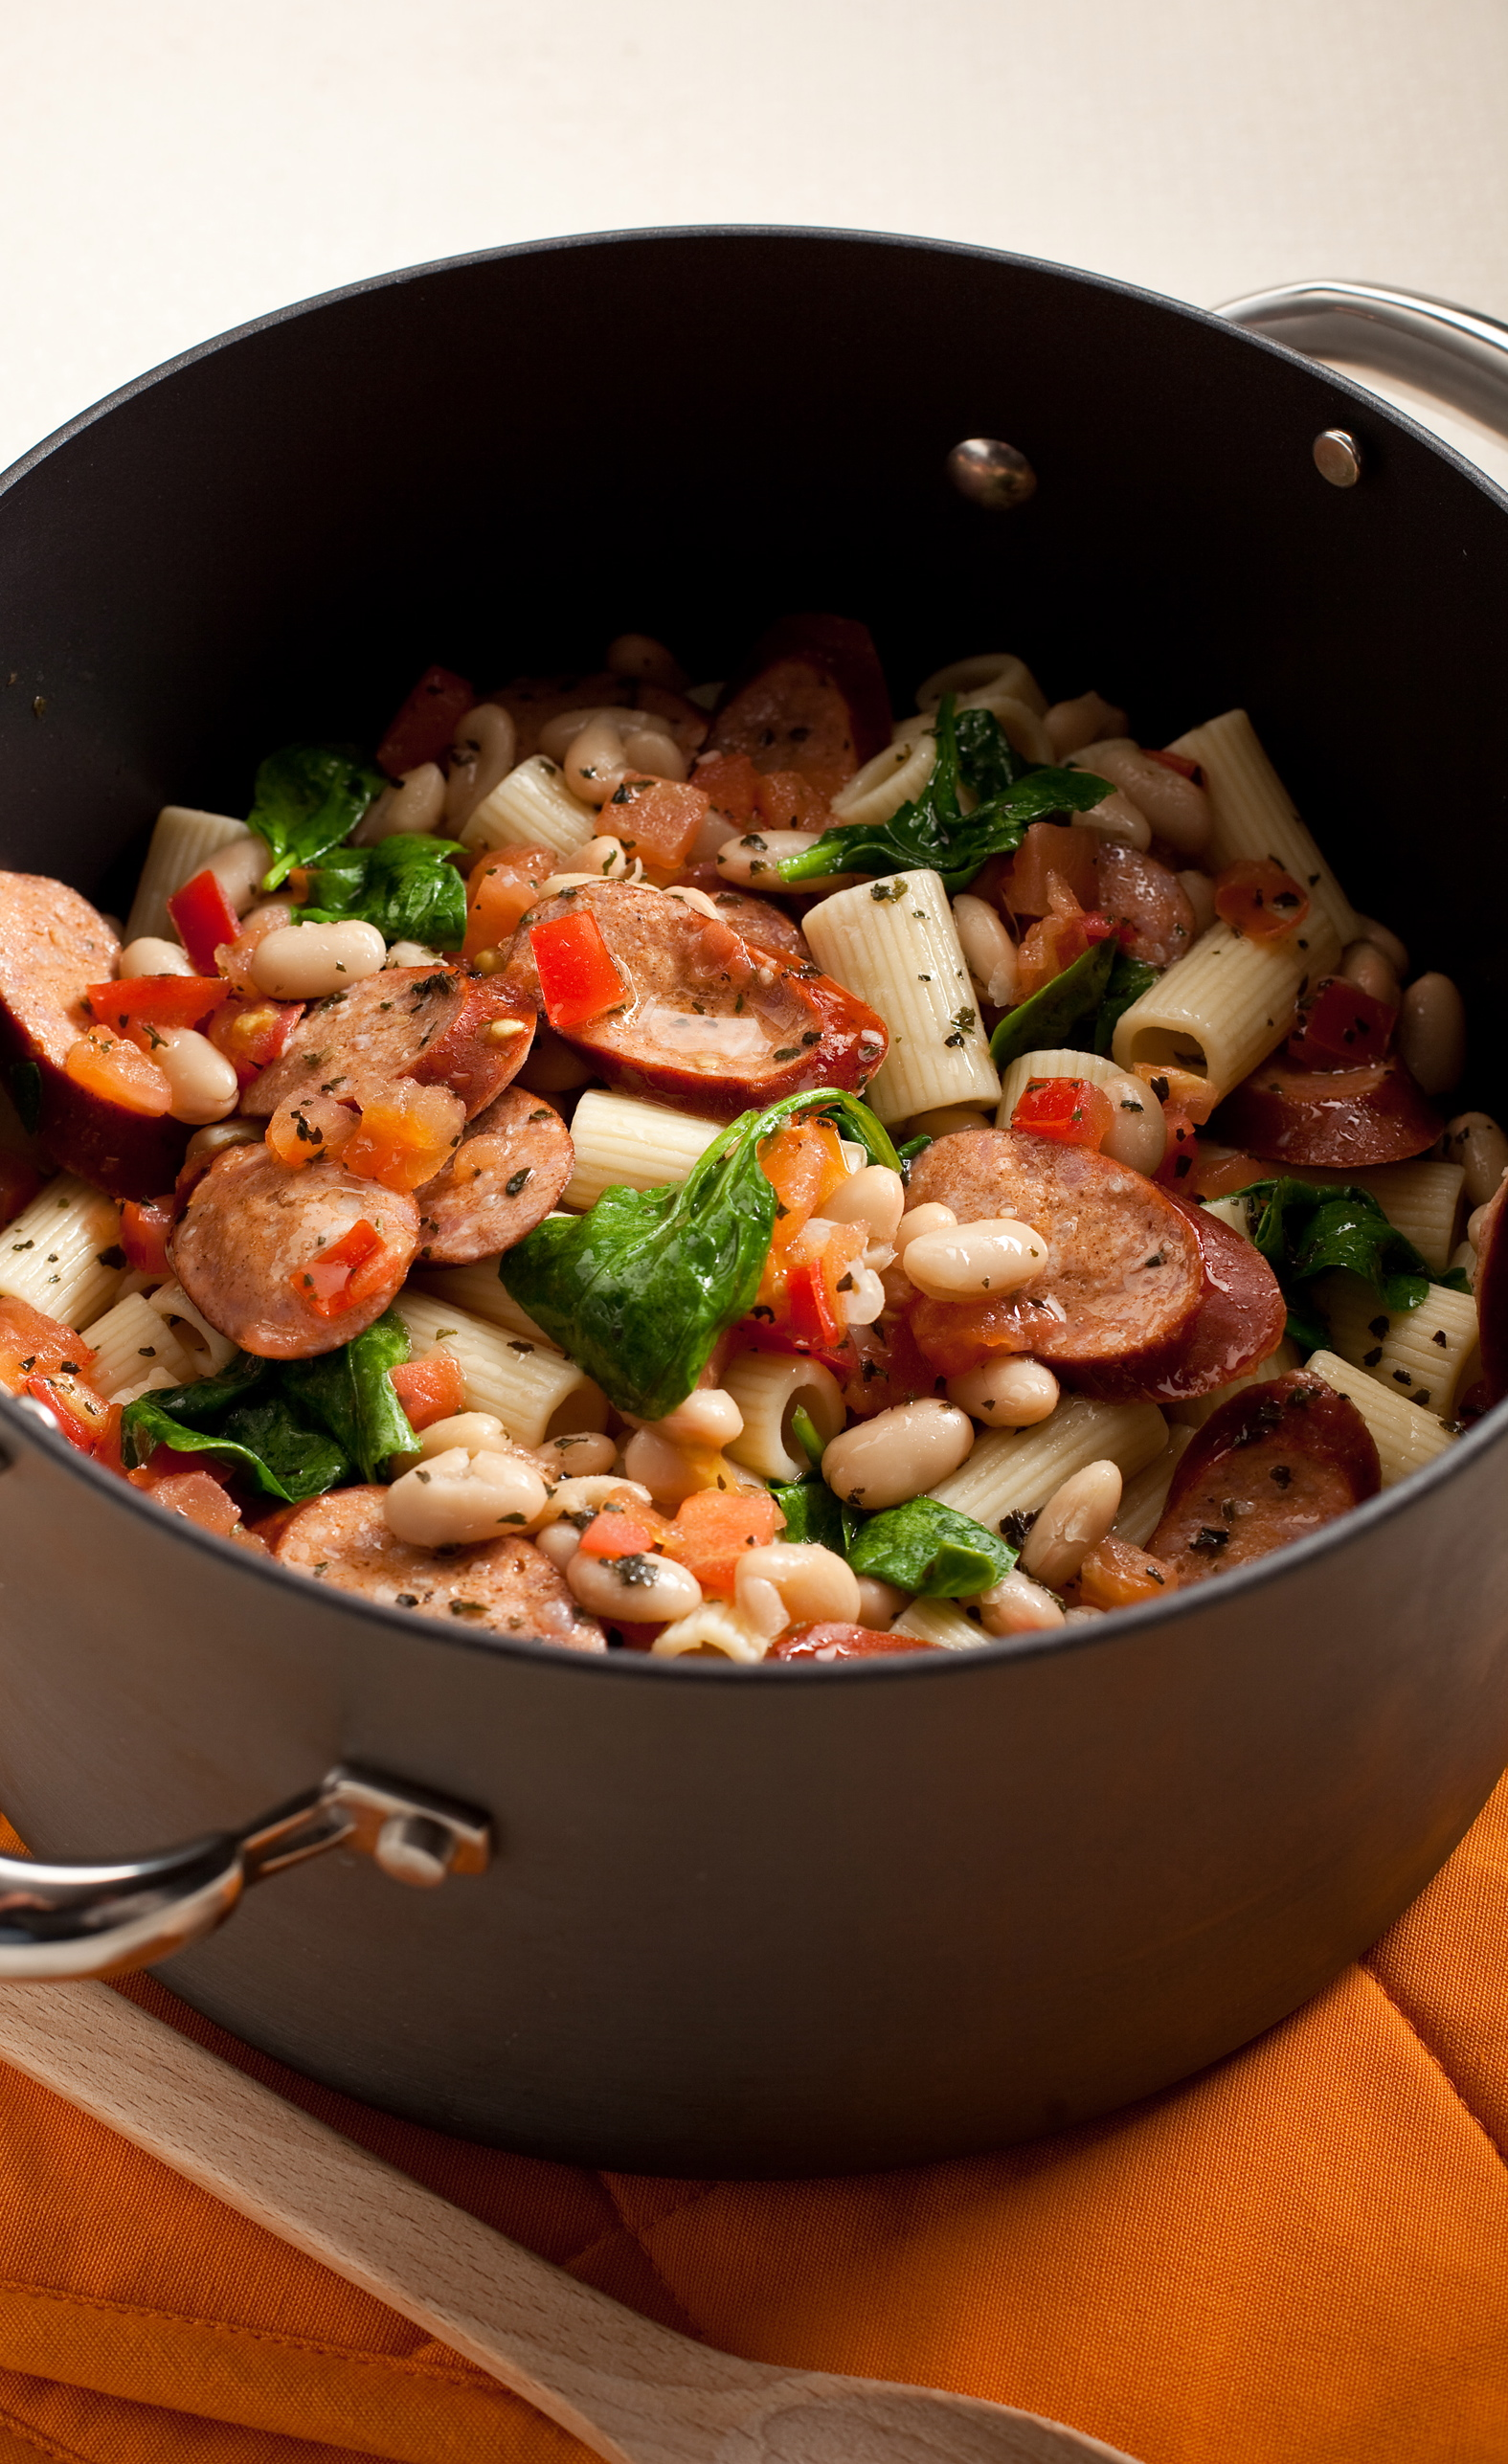 Skinny Rigatoni Pasta with White Beans and Sausage